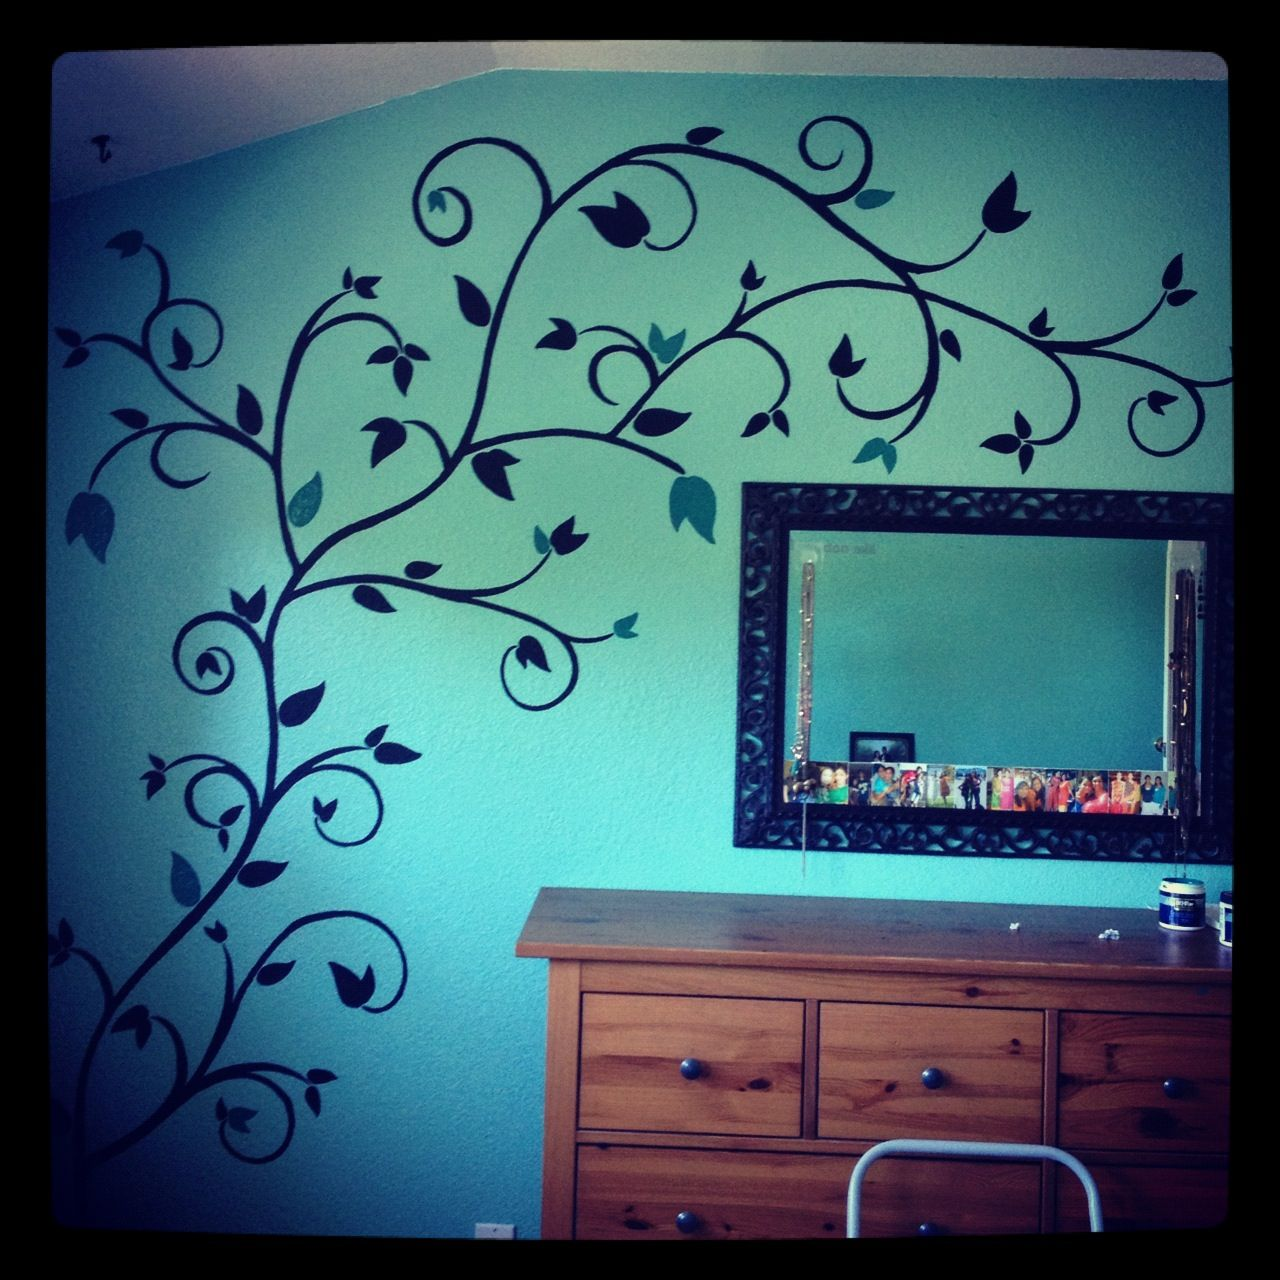 Painted Wall Designs Hand Painted Wall Design My Work Pinterest Hand Painted